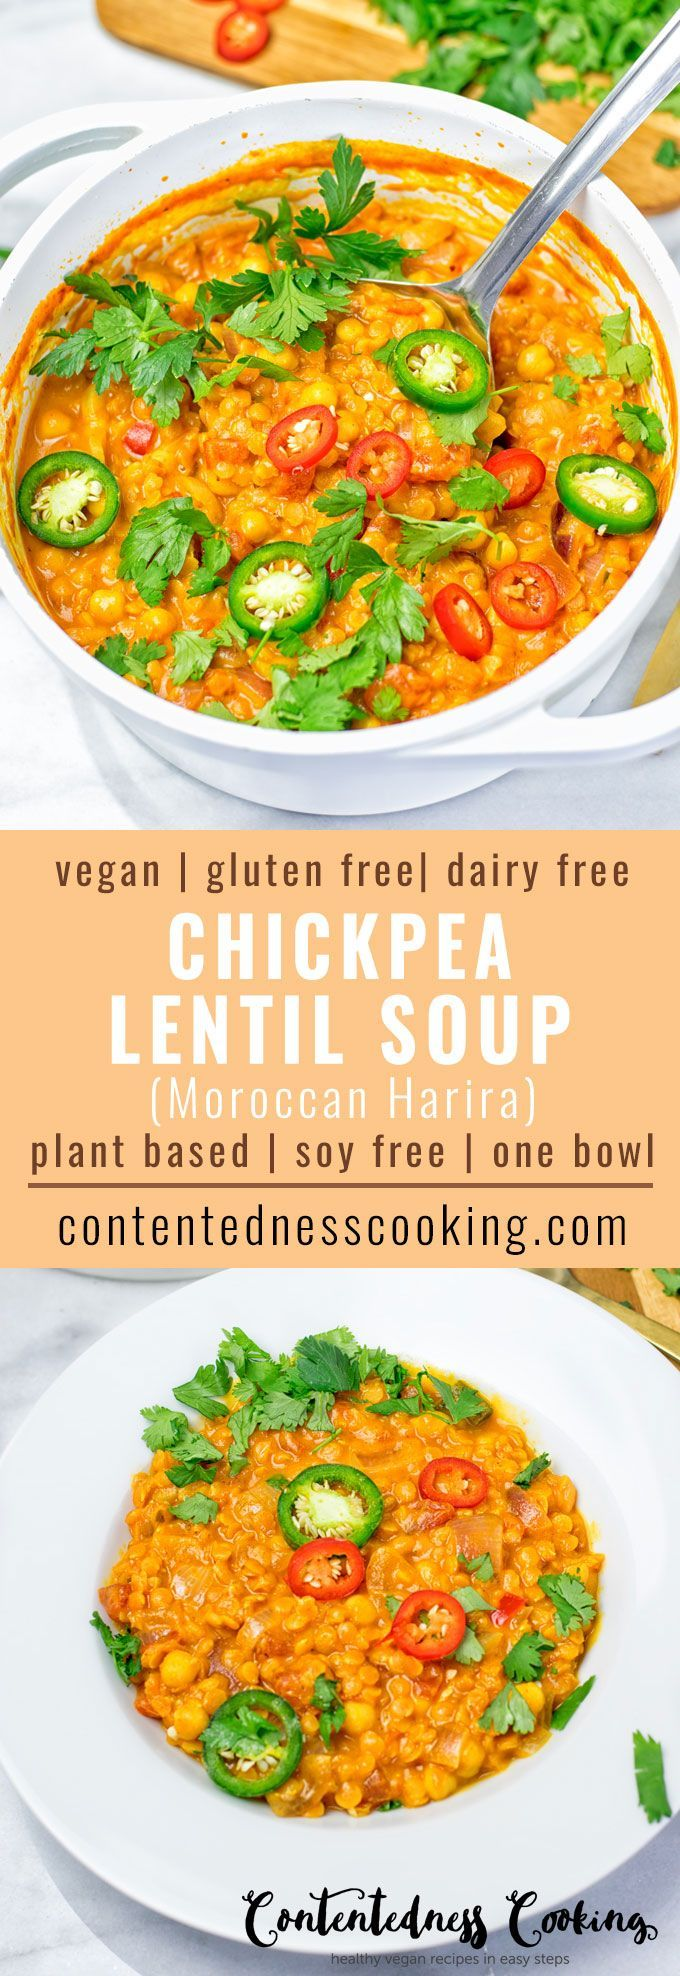 This Moroccan Chickpea Lentil Soup ( Harira) is full of fantastic flavors. It's vegan, gluten free and made with chickpeas and lentils for the ultimate texture. An easy one pot dairy free dinner or lunch.